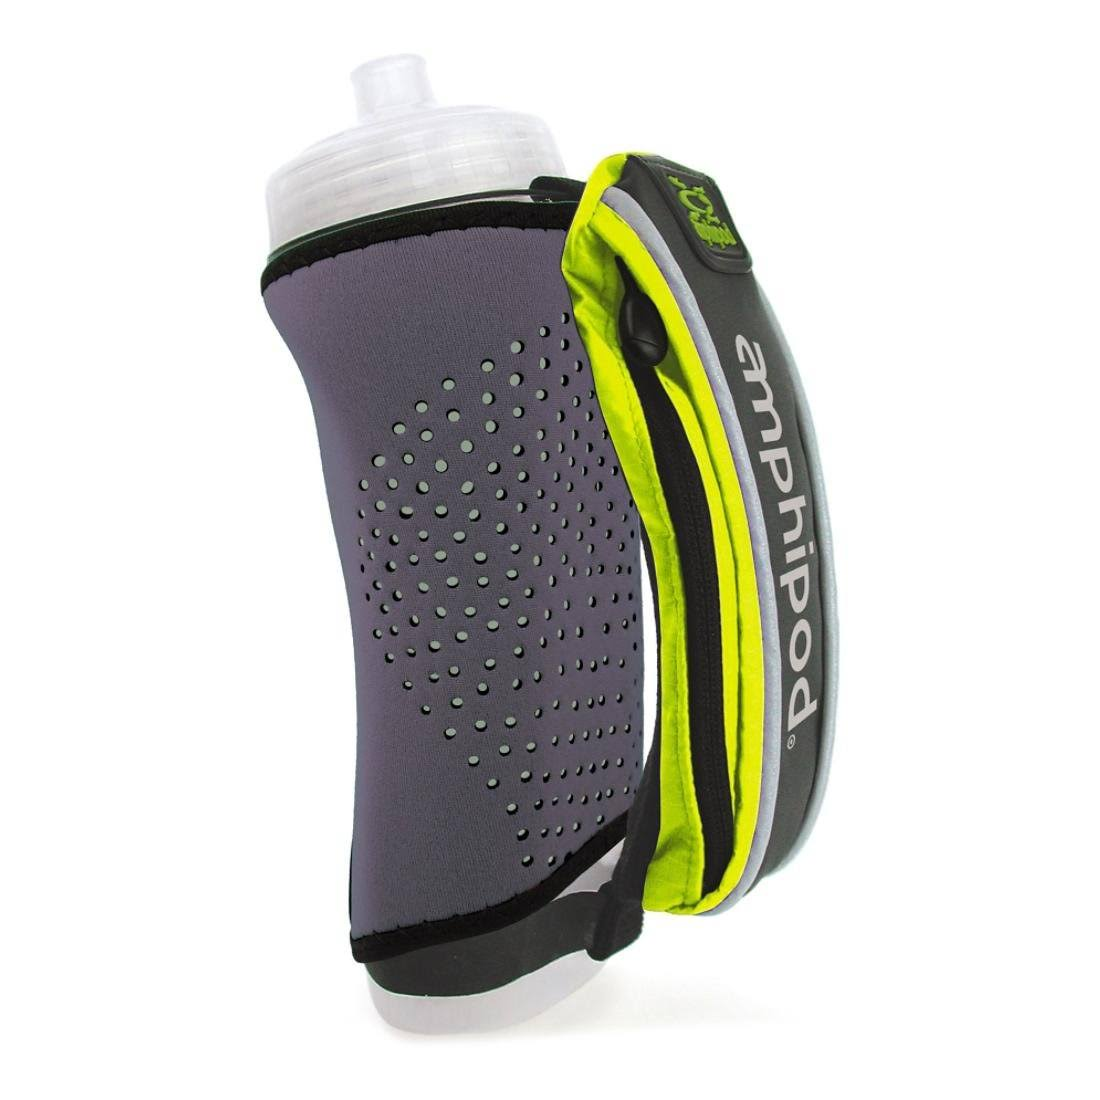 Amphipod Hydraform Jett Lite Thermal Water Bottle - 20oz